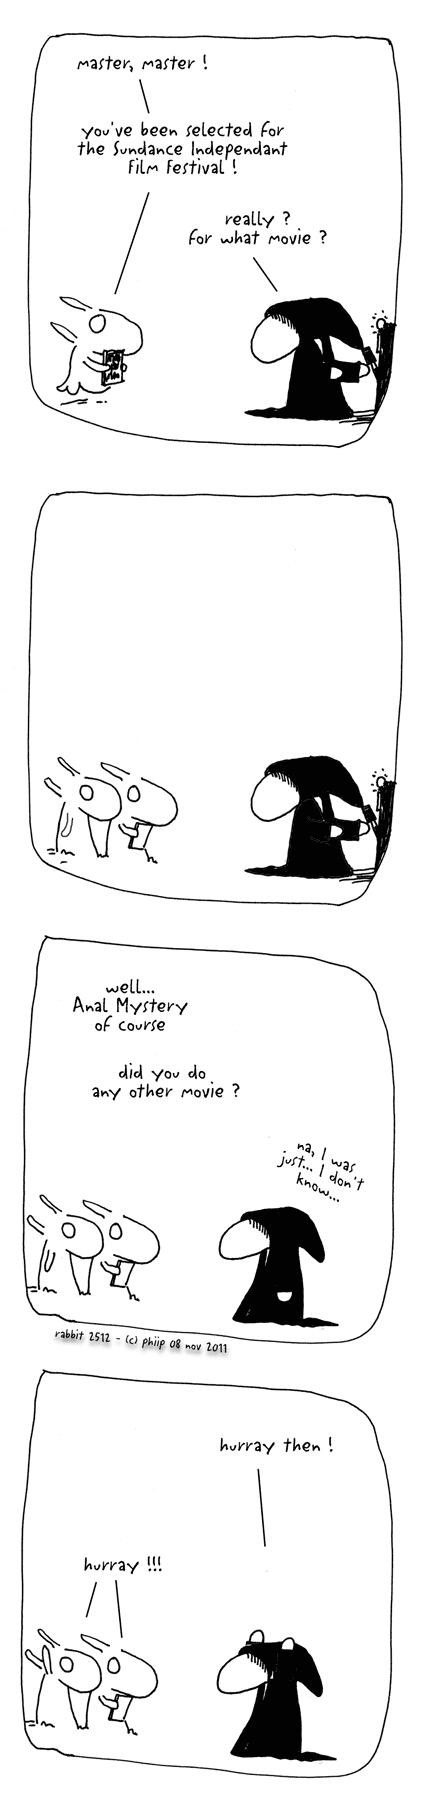 Anal Mystery